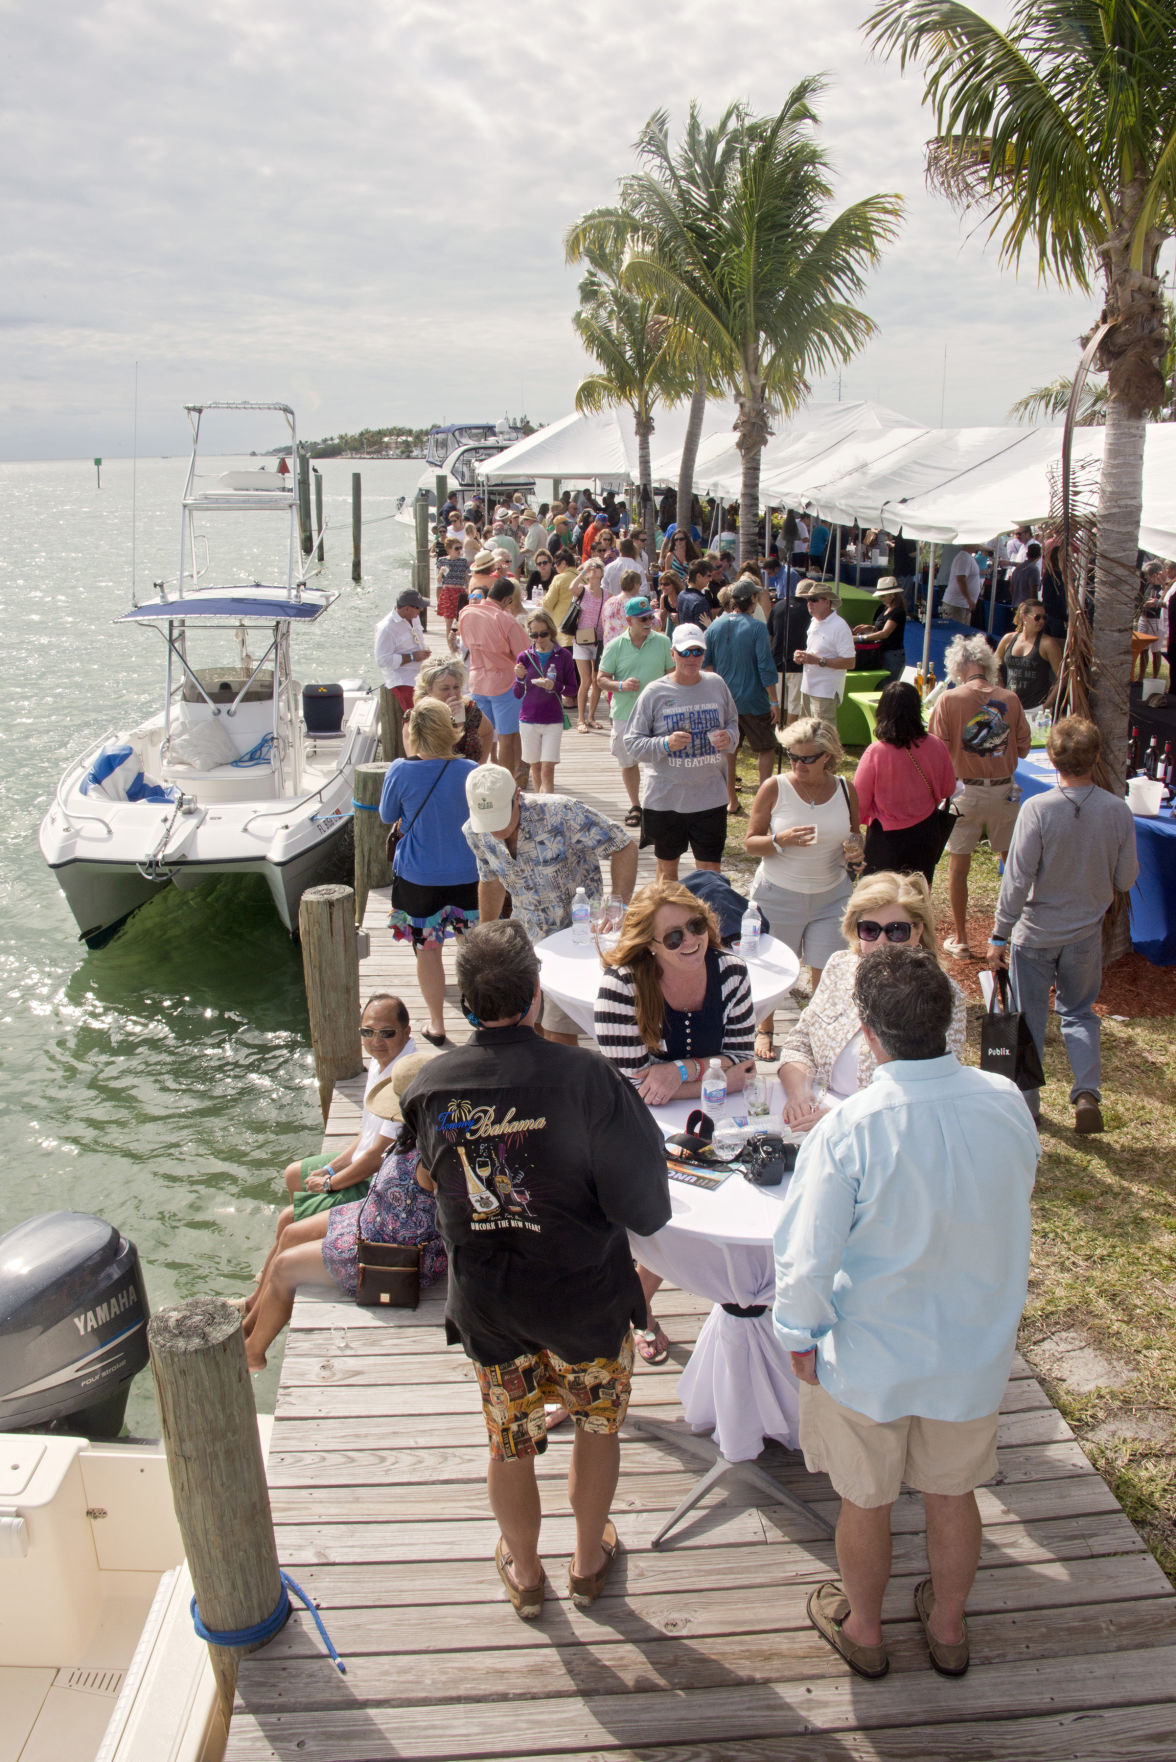 Eat and drink in paradise at the Uncorked Food and Wine Festival.